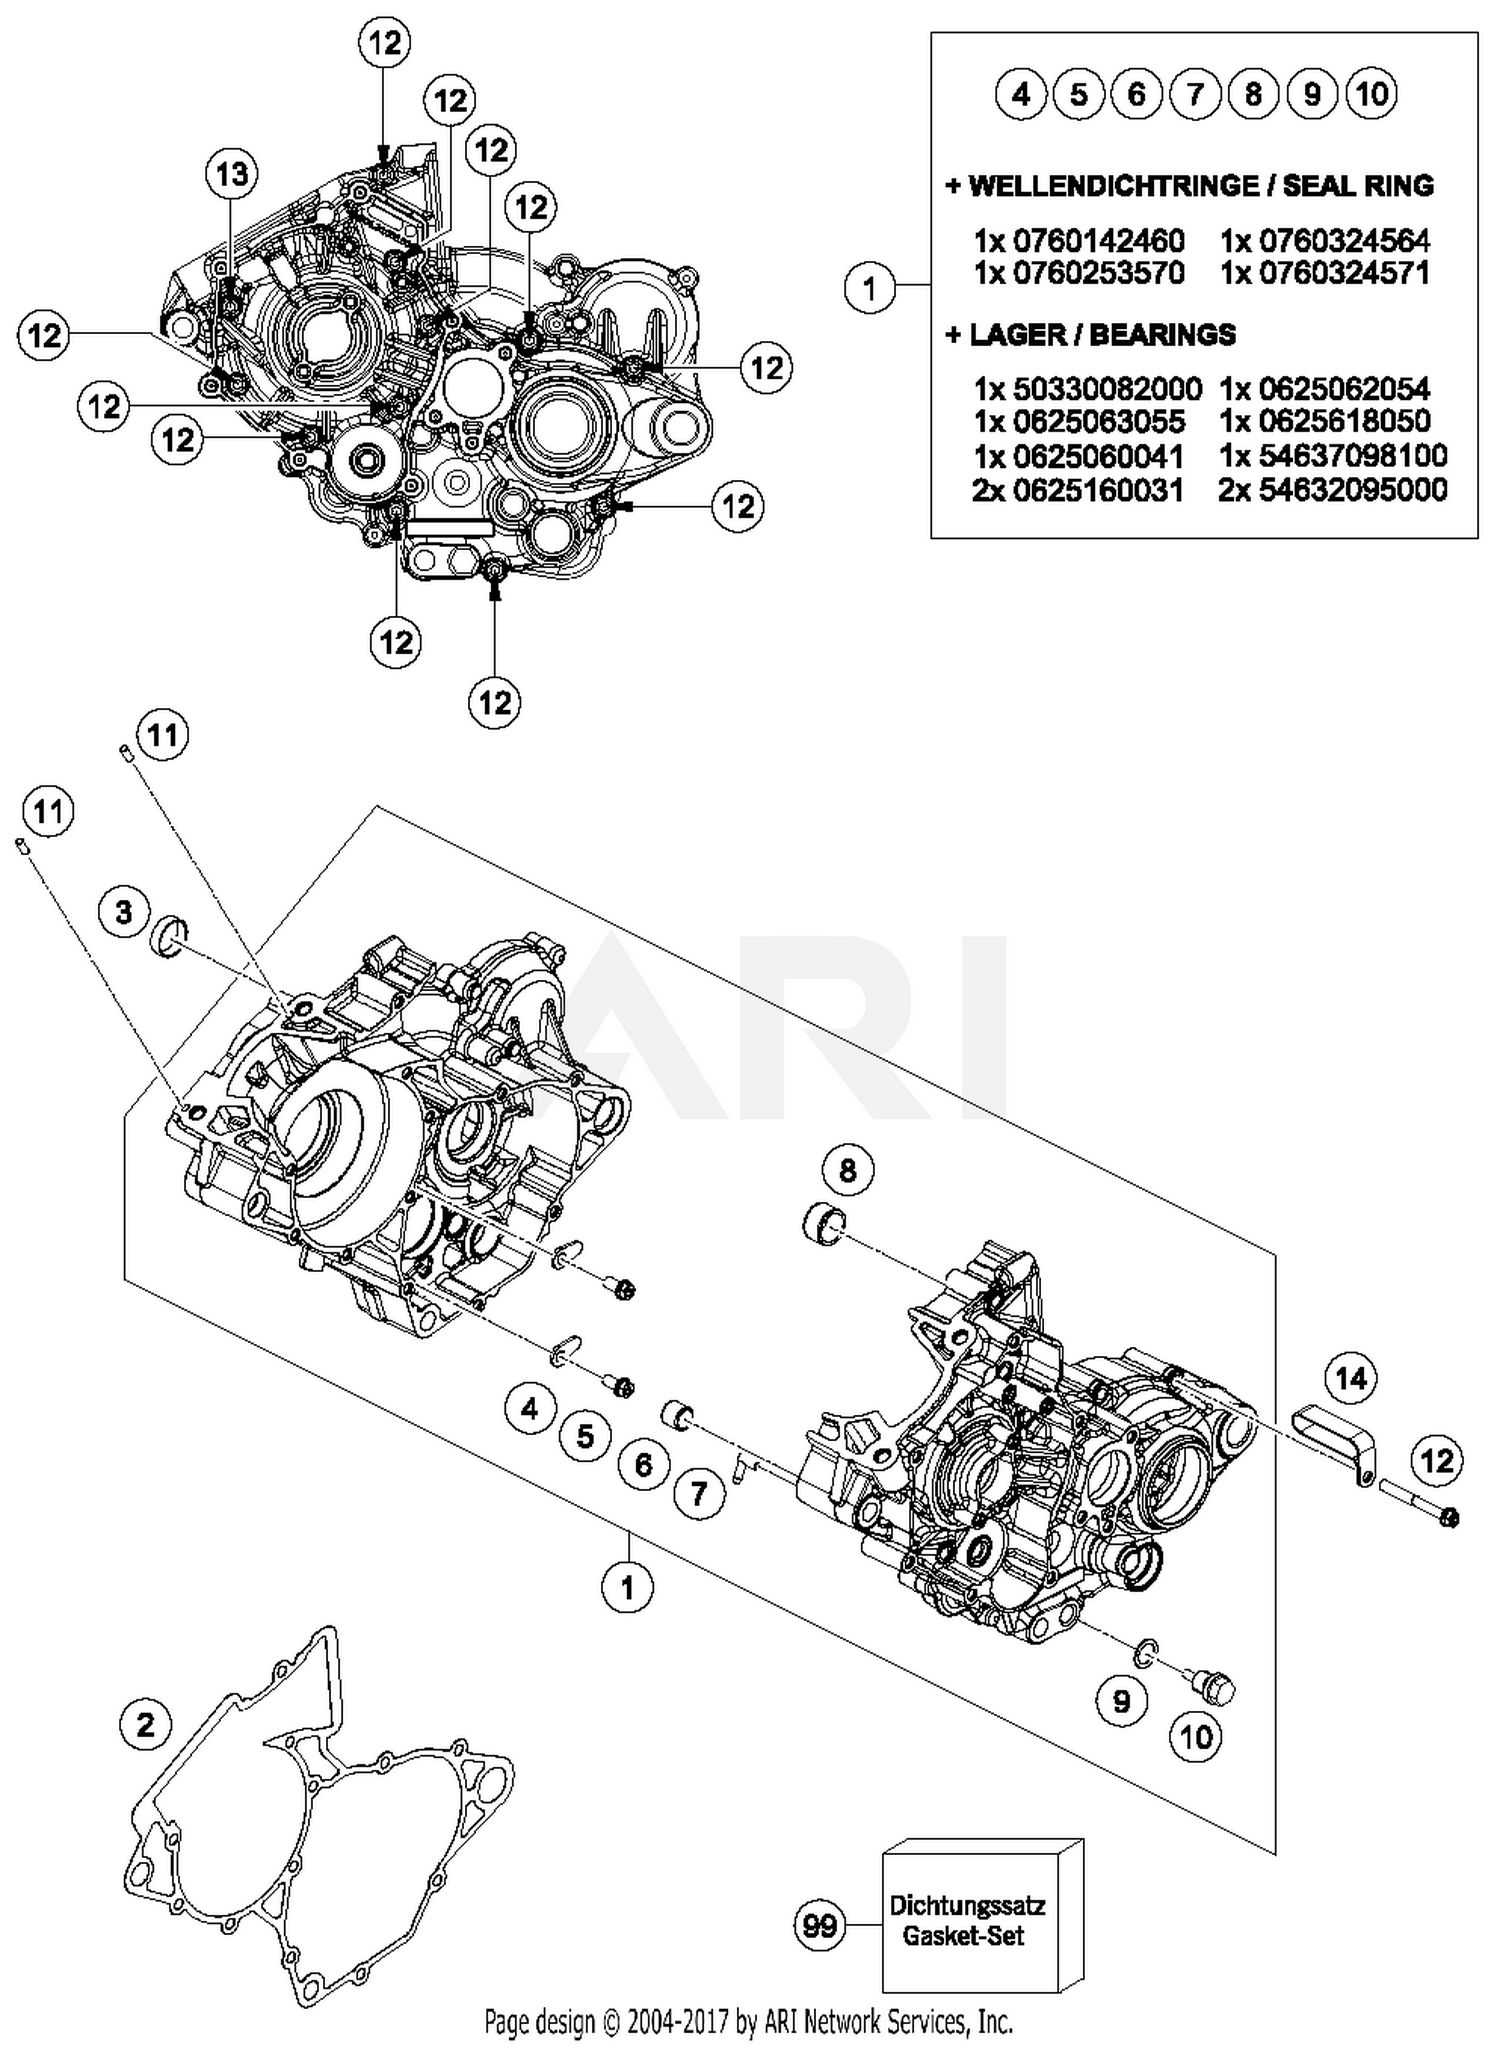 hight resolution of ktm 390 engine diagram wiring diagram mega ktm 50 engine diagram ktm engine diagram